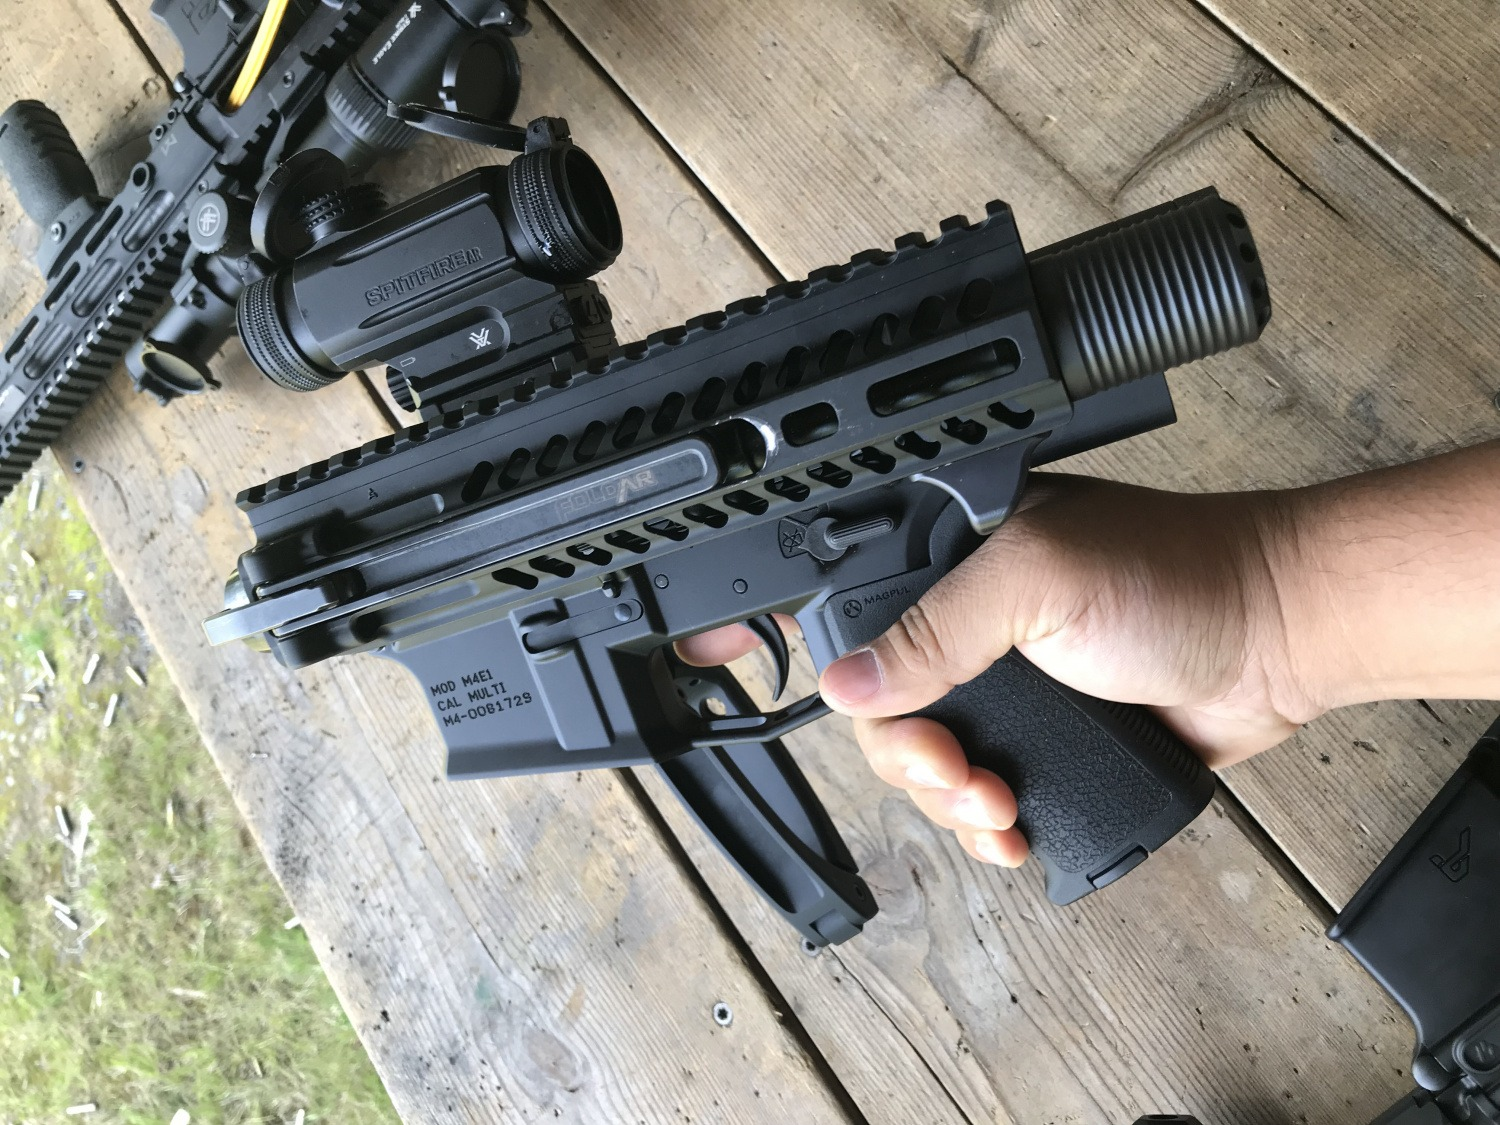 TriggrCon 2019] Dead Foot Arms' SCW 2 5 PDW Brace -The